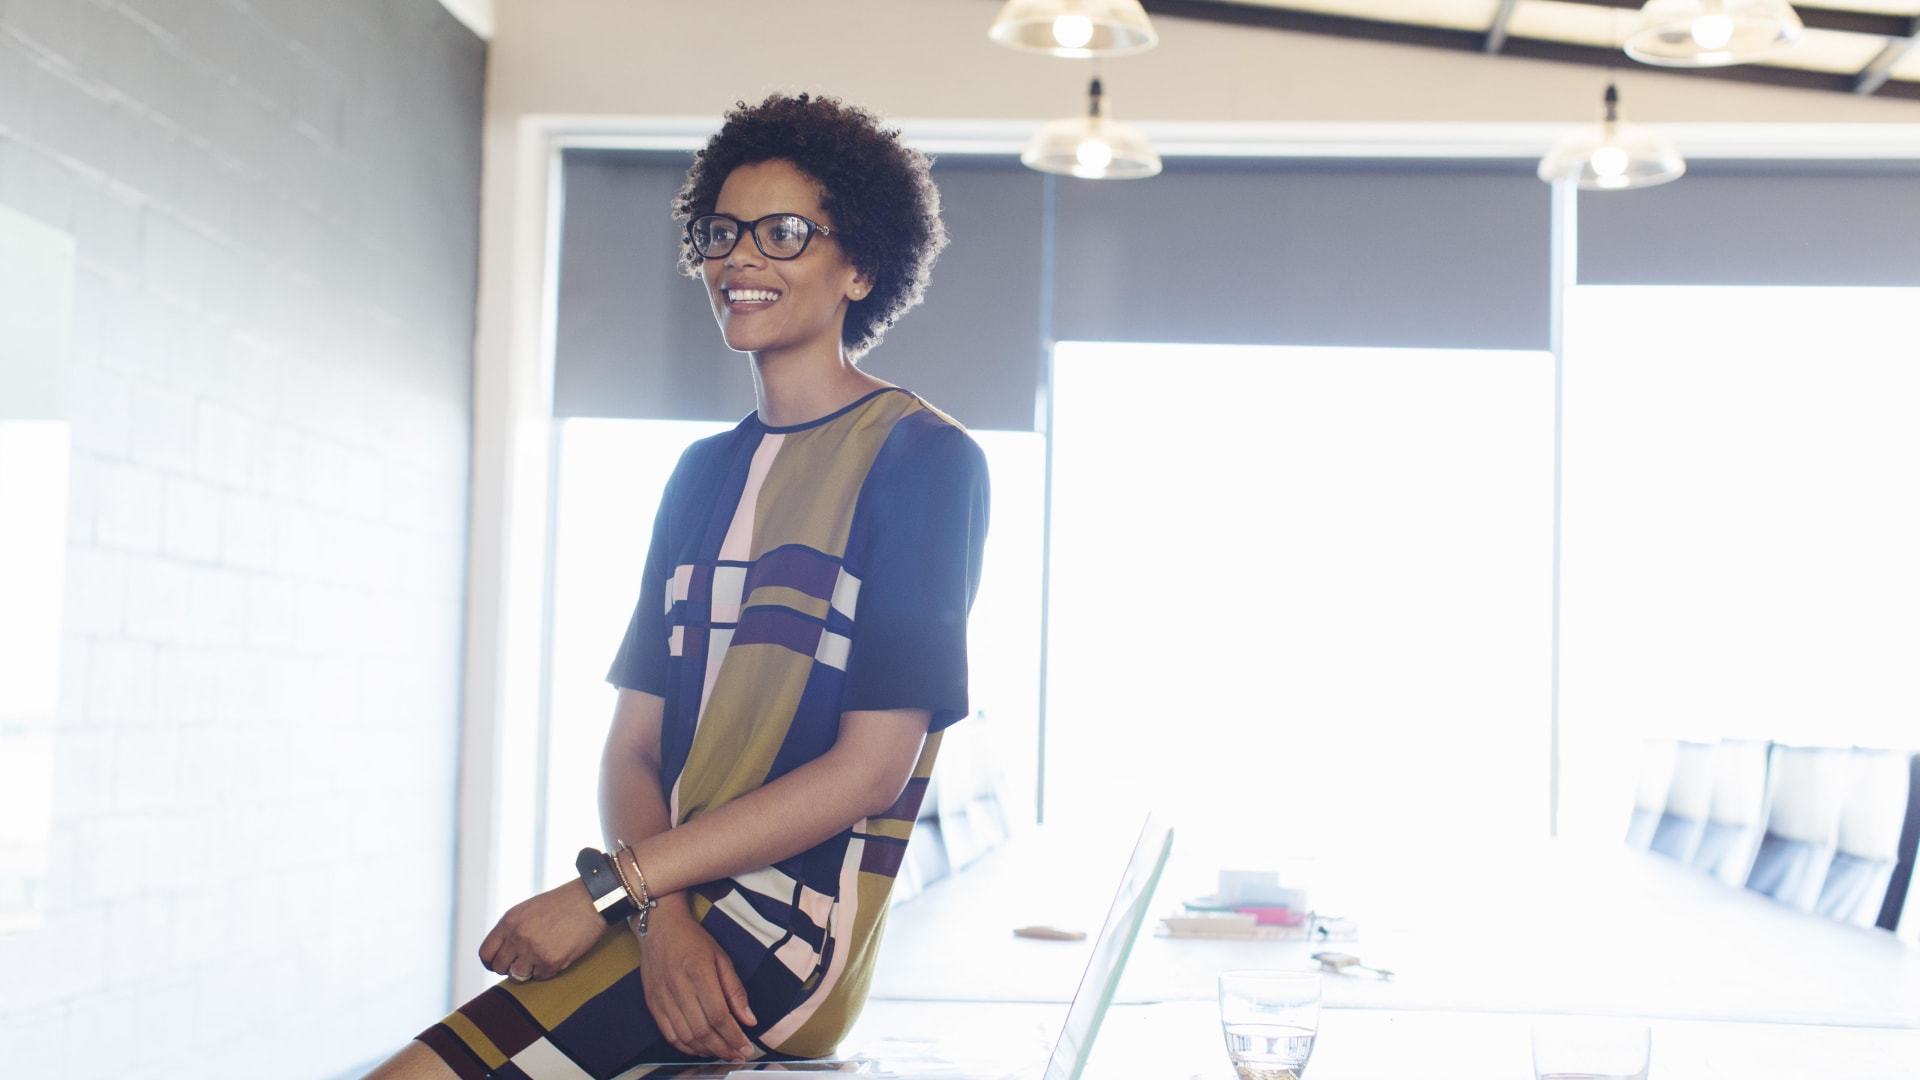 How Do You Know Whether You Have True Leadership Skills? Look for These 4 Signs